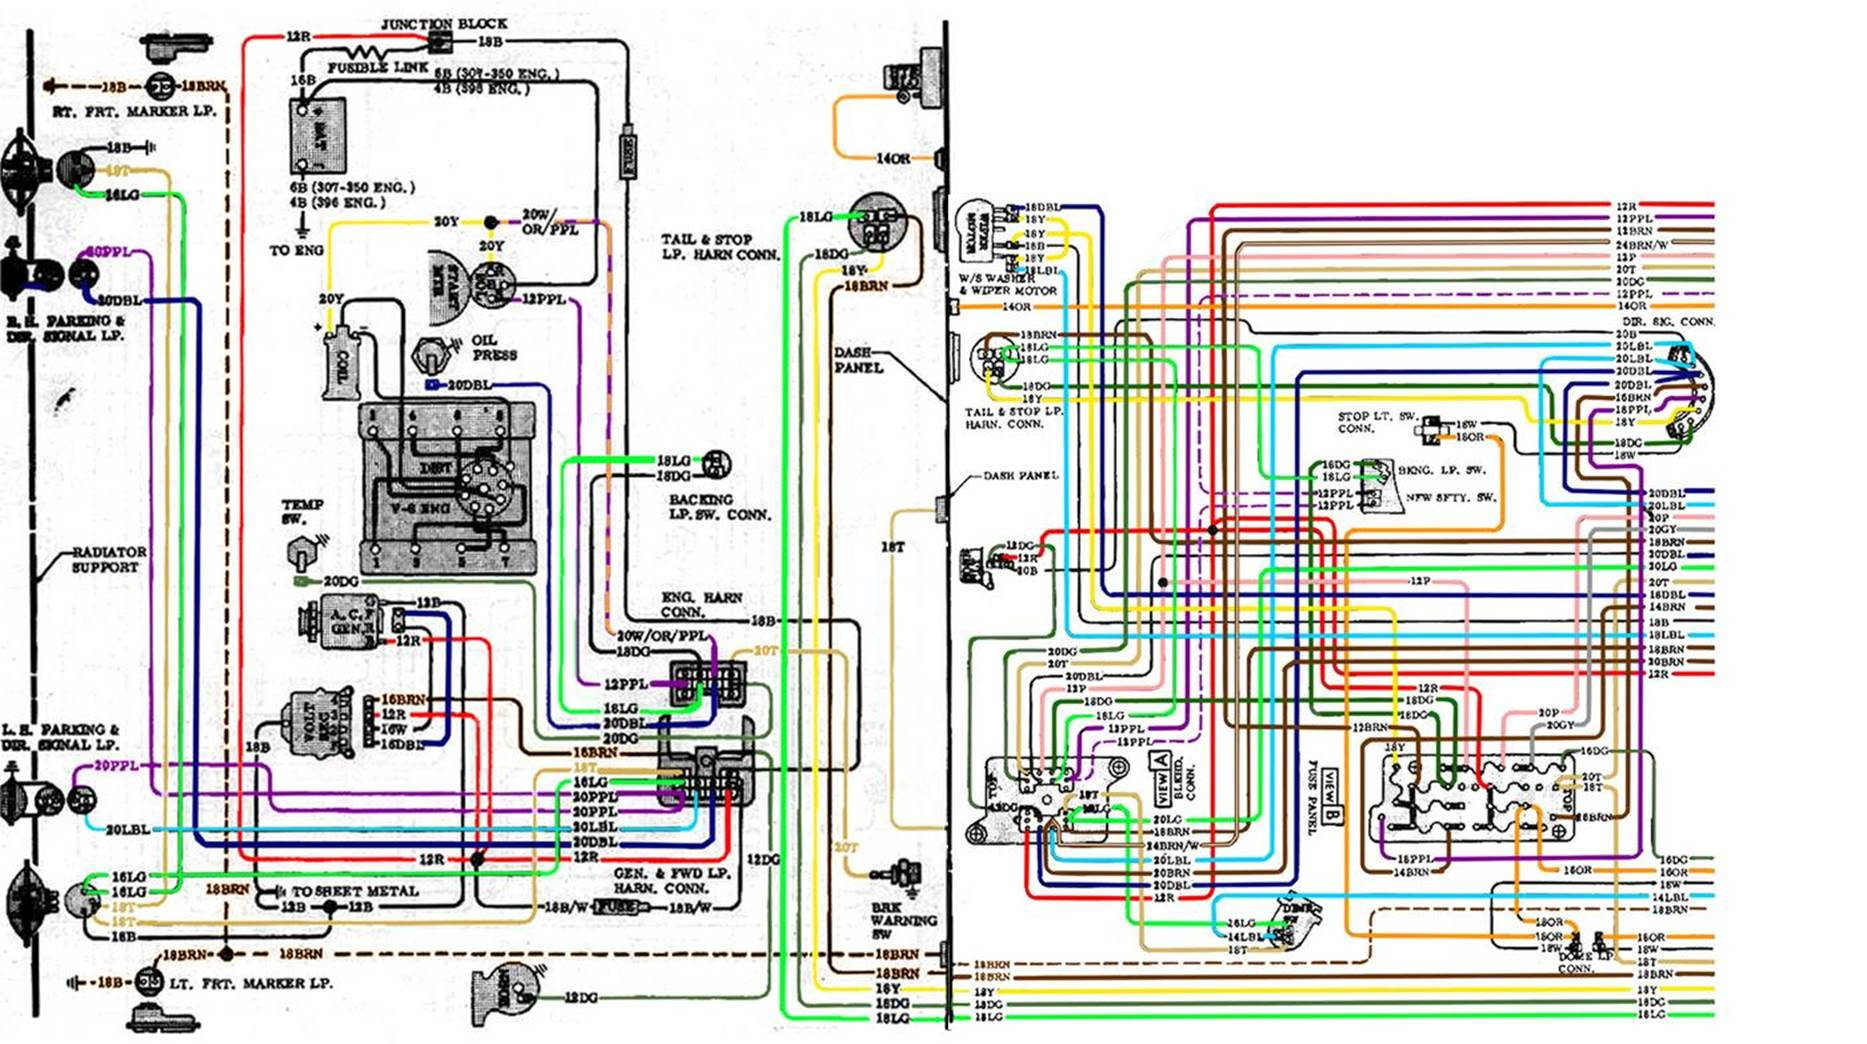 72 chevy fuse diagram find wiring diagram u2022 rh empcom co 2003 Kia  Optima Fuse Diagram 2003 Kia Optima Fuse Diagram